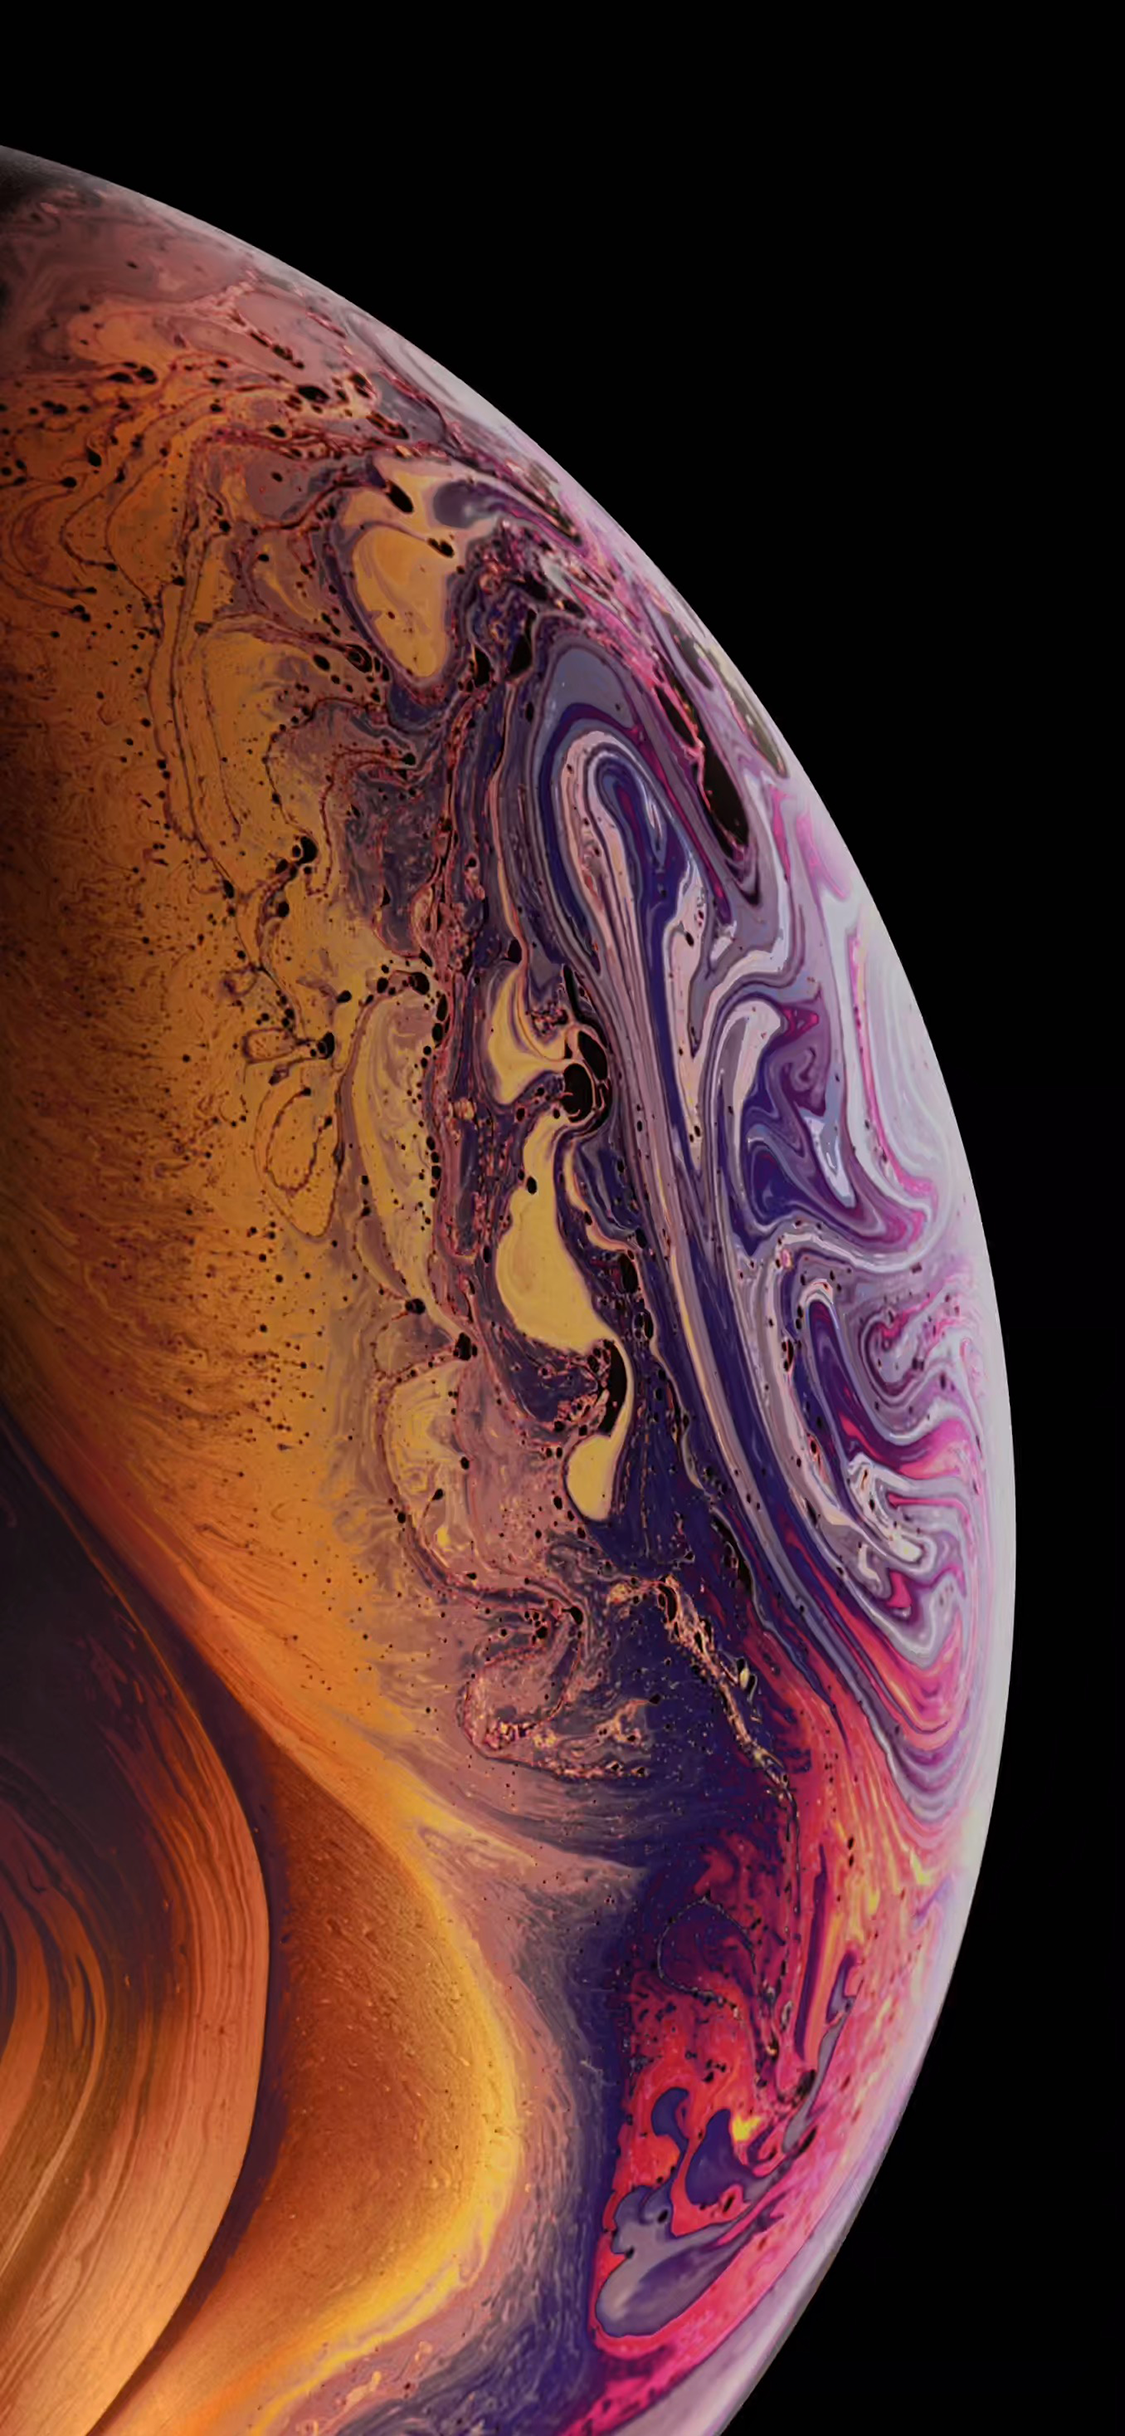 iPhone XS Wallpaper - Gold ( Event) - Wallpapers Central